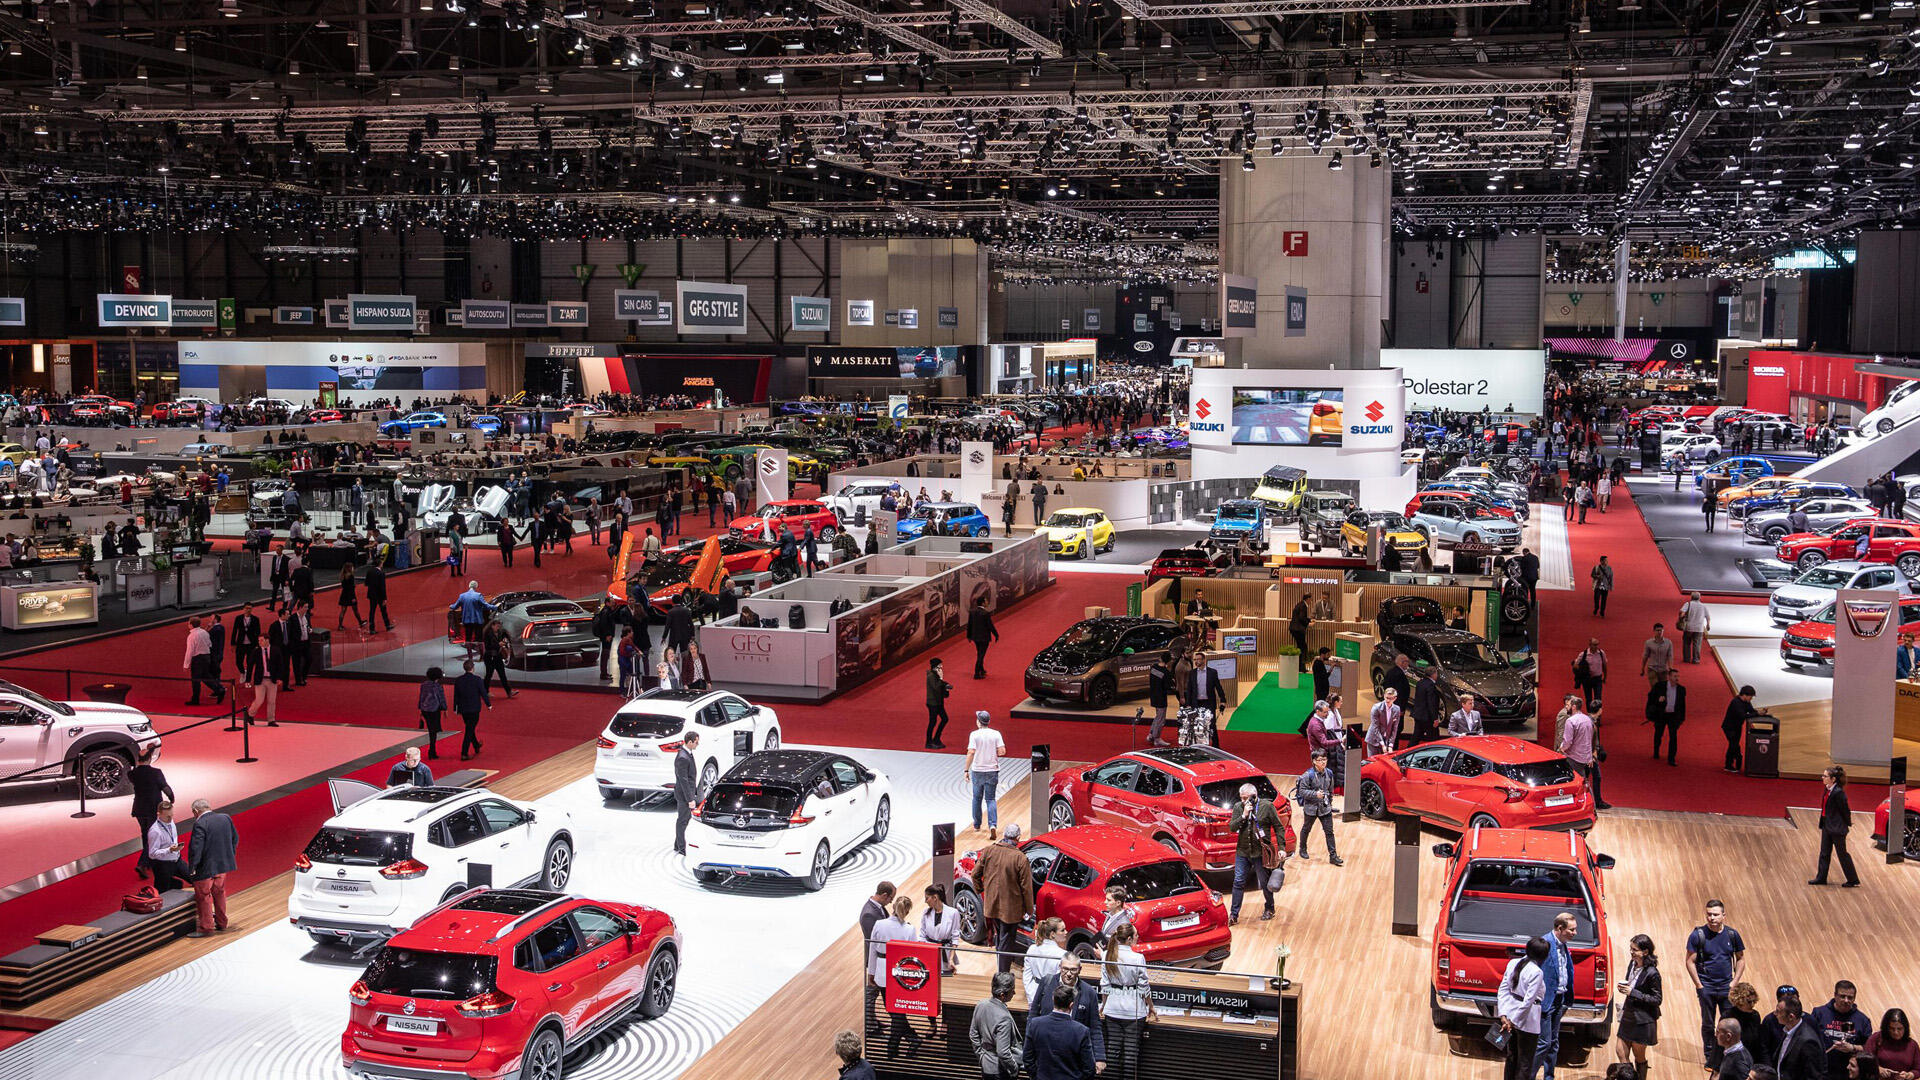 Video: AutoComplete looks at the Geneva Motor Show that might have been